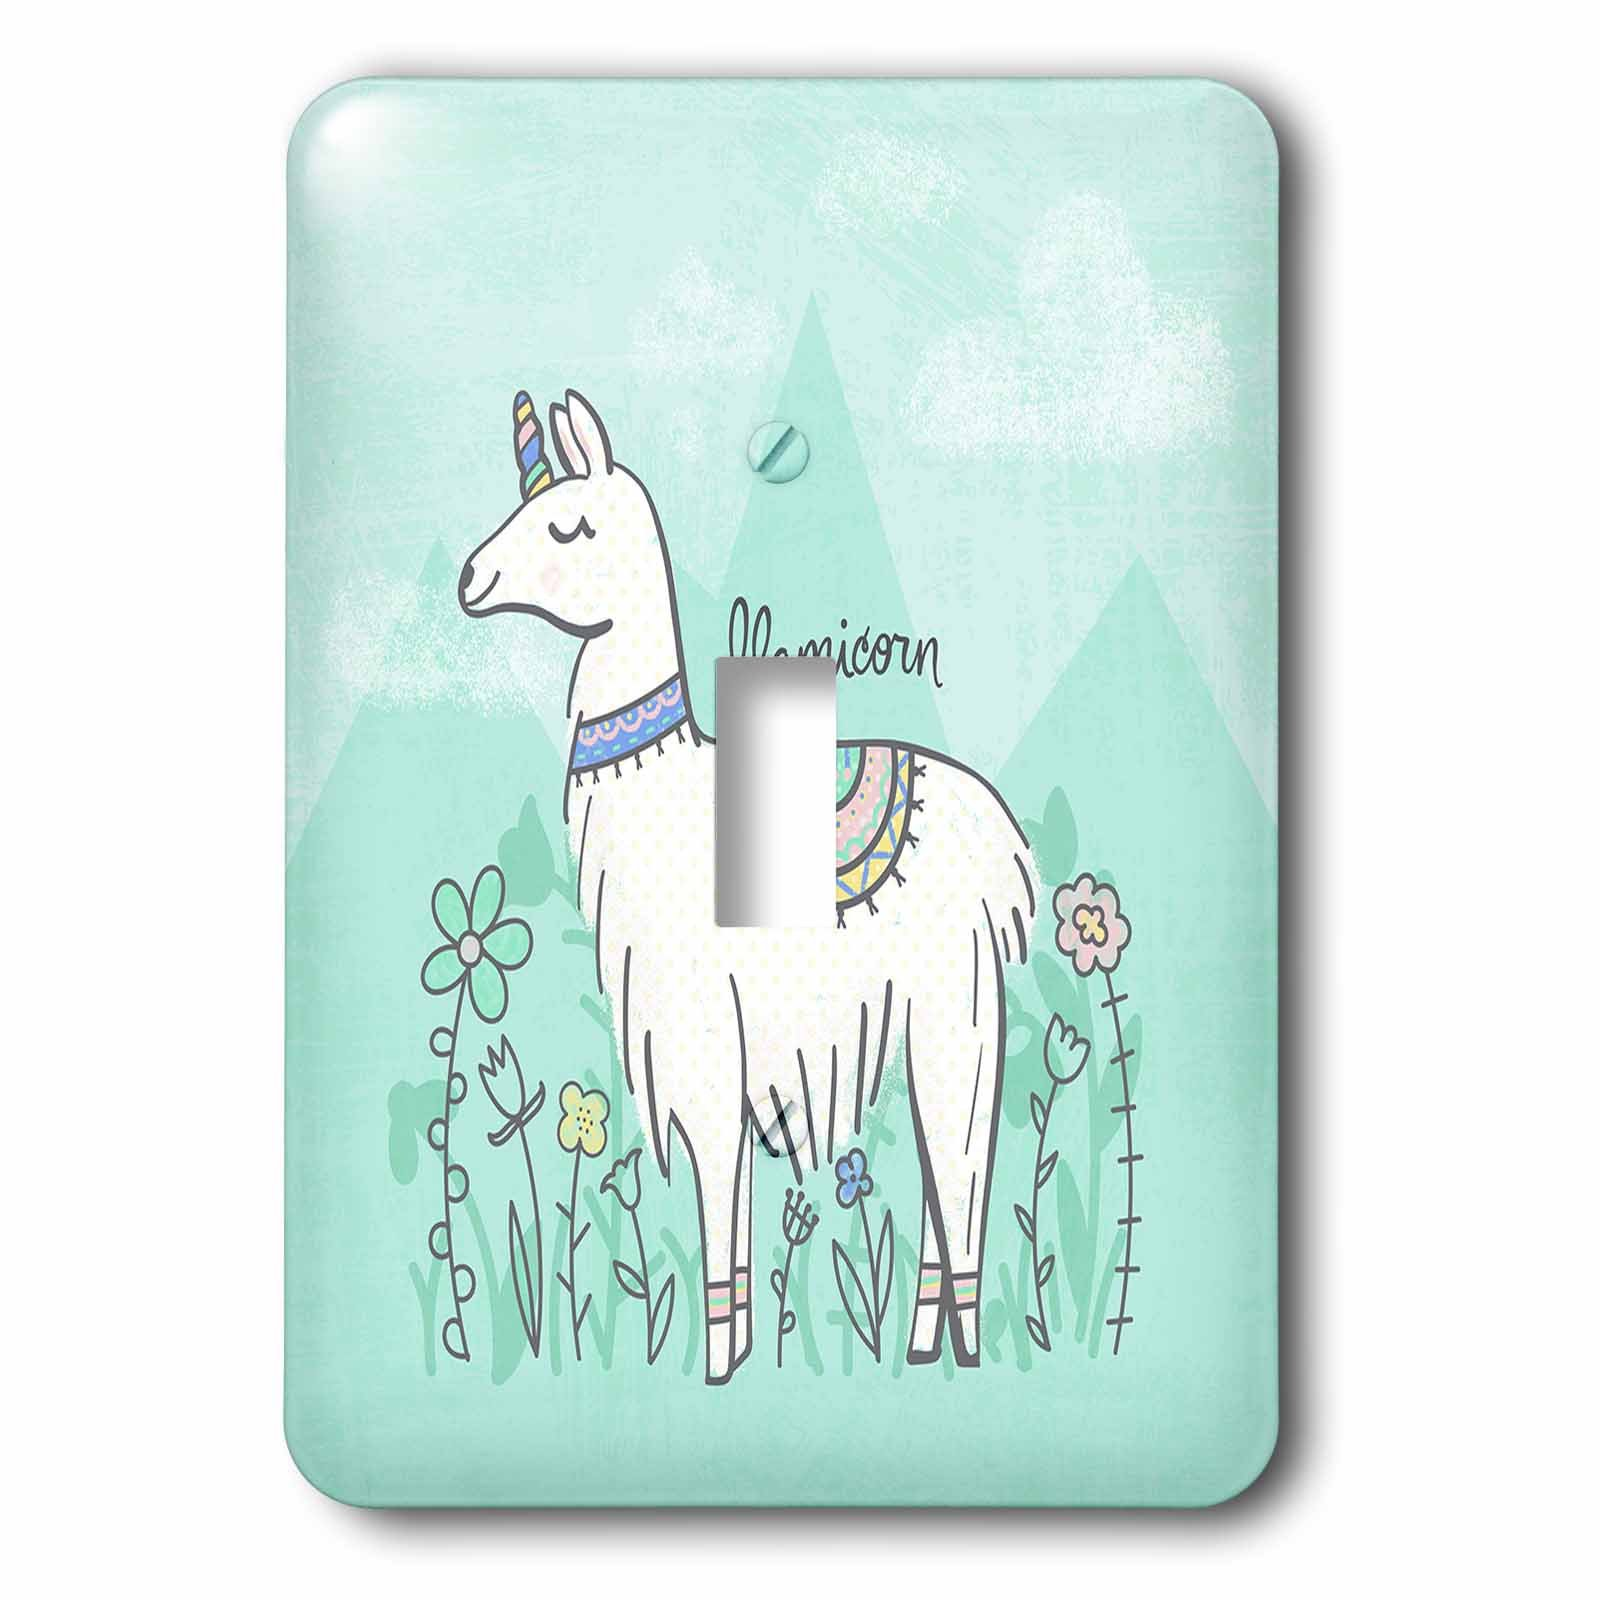 3dRose Noonday Design - Animals - Funny mythical llama crossed with a unicorn, a llamicorn - Light Switch Covers - single toggle switch (lsp_281733_1)